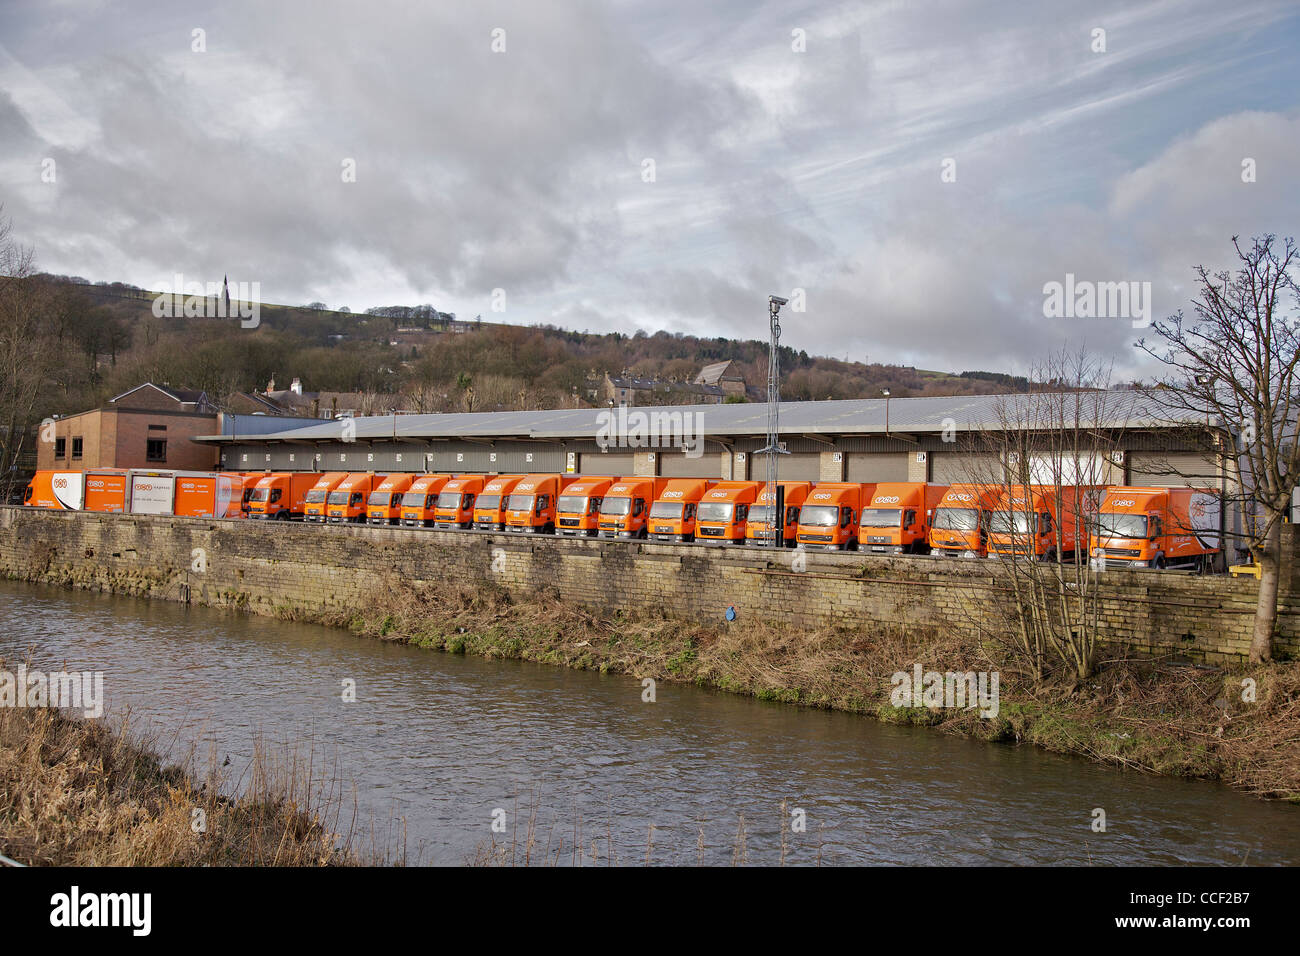 The TNT freight transport depot in Ramsbottom with a line of lorries. - Stock Image